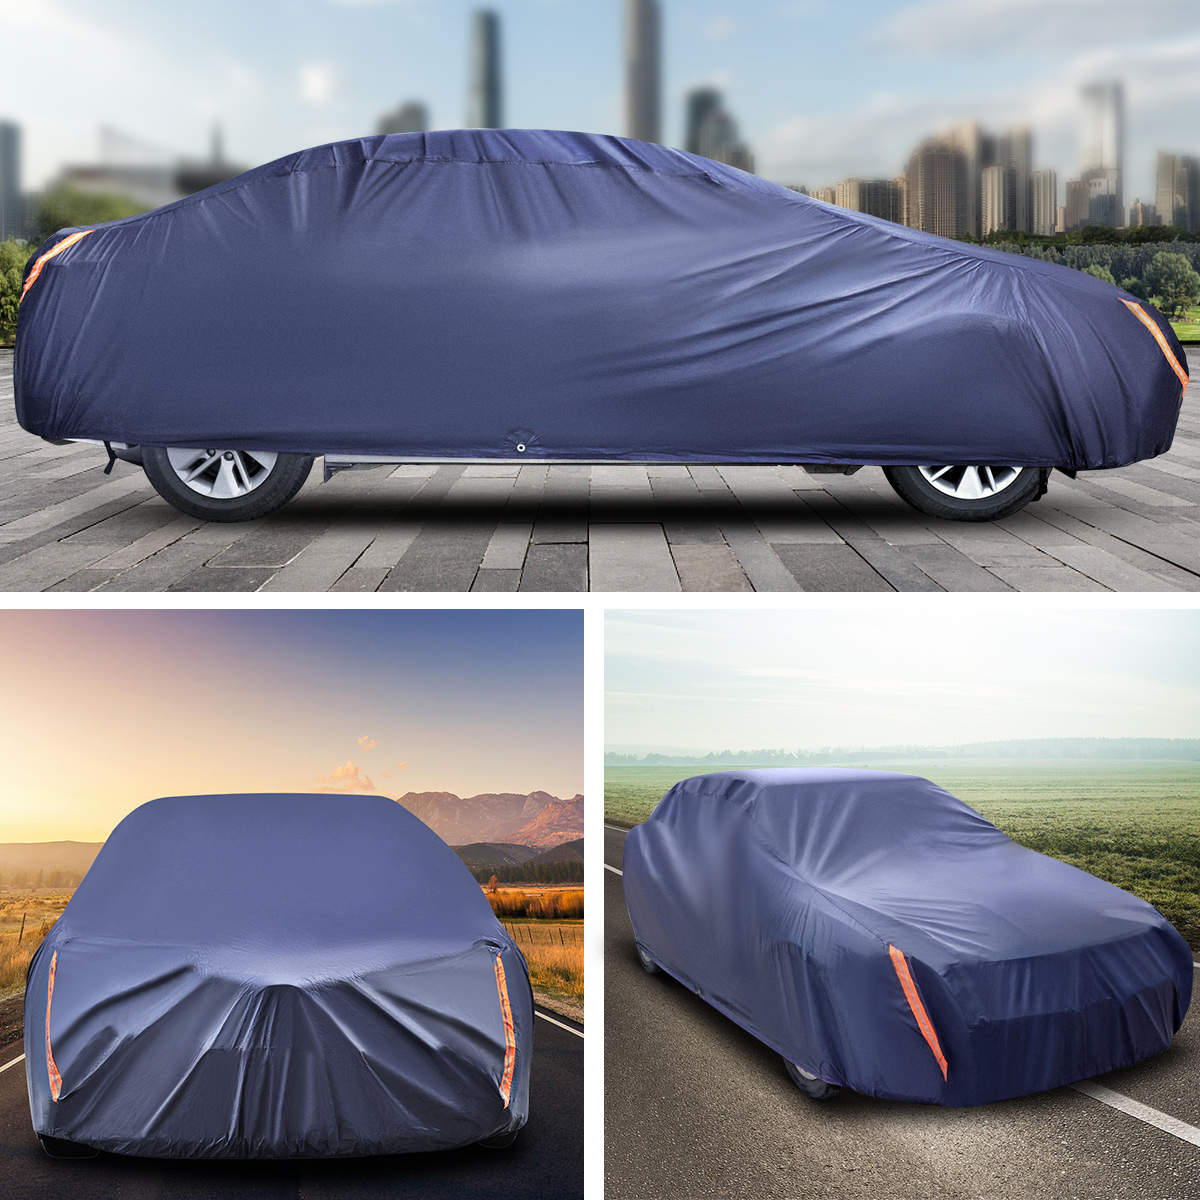 COLOR RAIN TIME Car Cover Waterproof All Weather UV Protection Windproof Dustproof Scratch Resistant Outdoor Universal Full Car Covers with Zipper for Sedan 185-191 inch